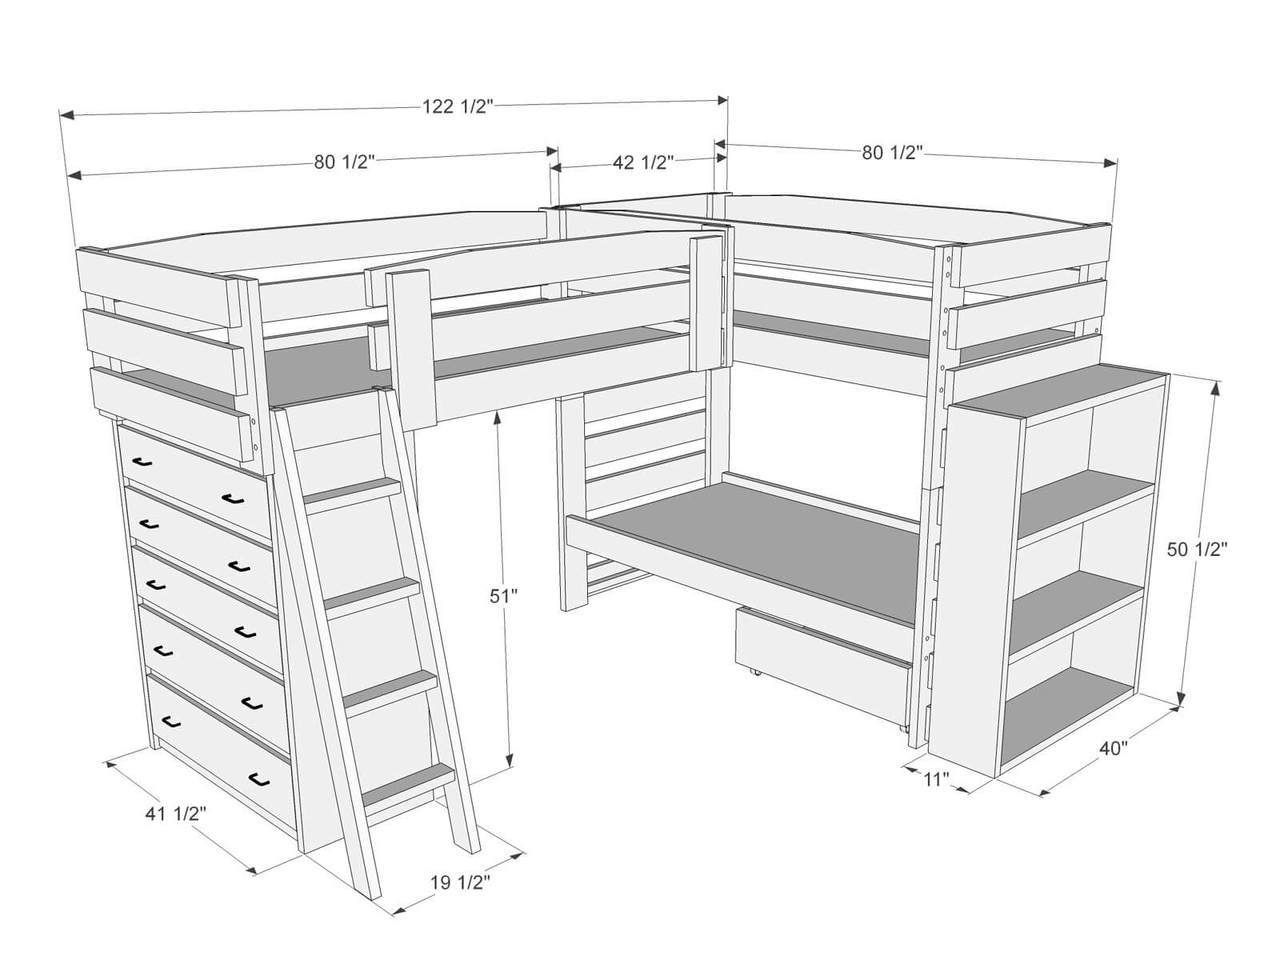 Bunk Bed Dimensions Dimensions Of Triple Bunk Bed L87 Bunk Beds Bunk Beds